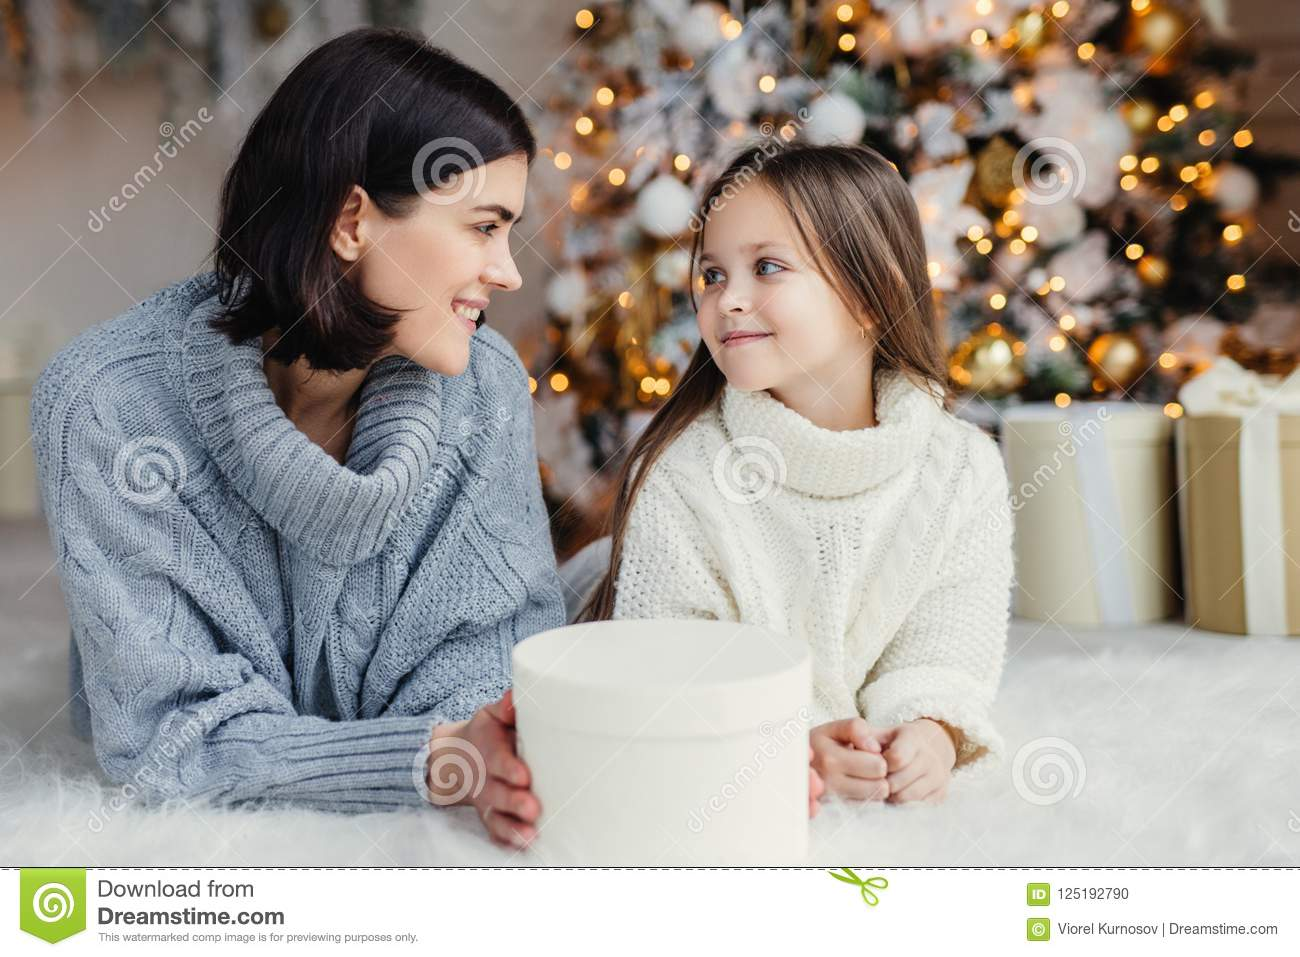 People, family, celebration and holidays concept. Mother and daughter with attractive appearance look at each other`s eyes, lie o